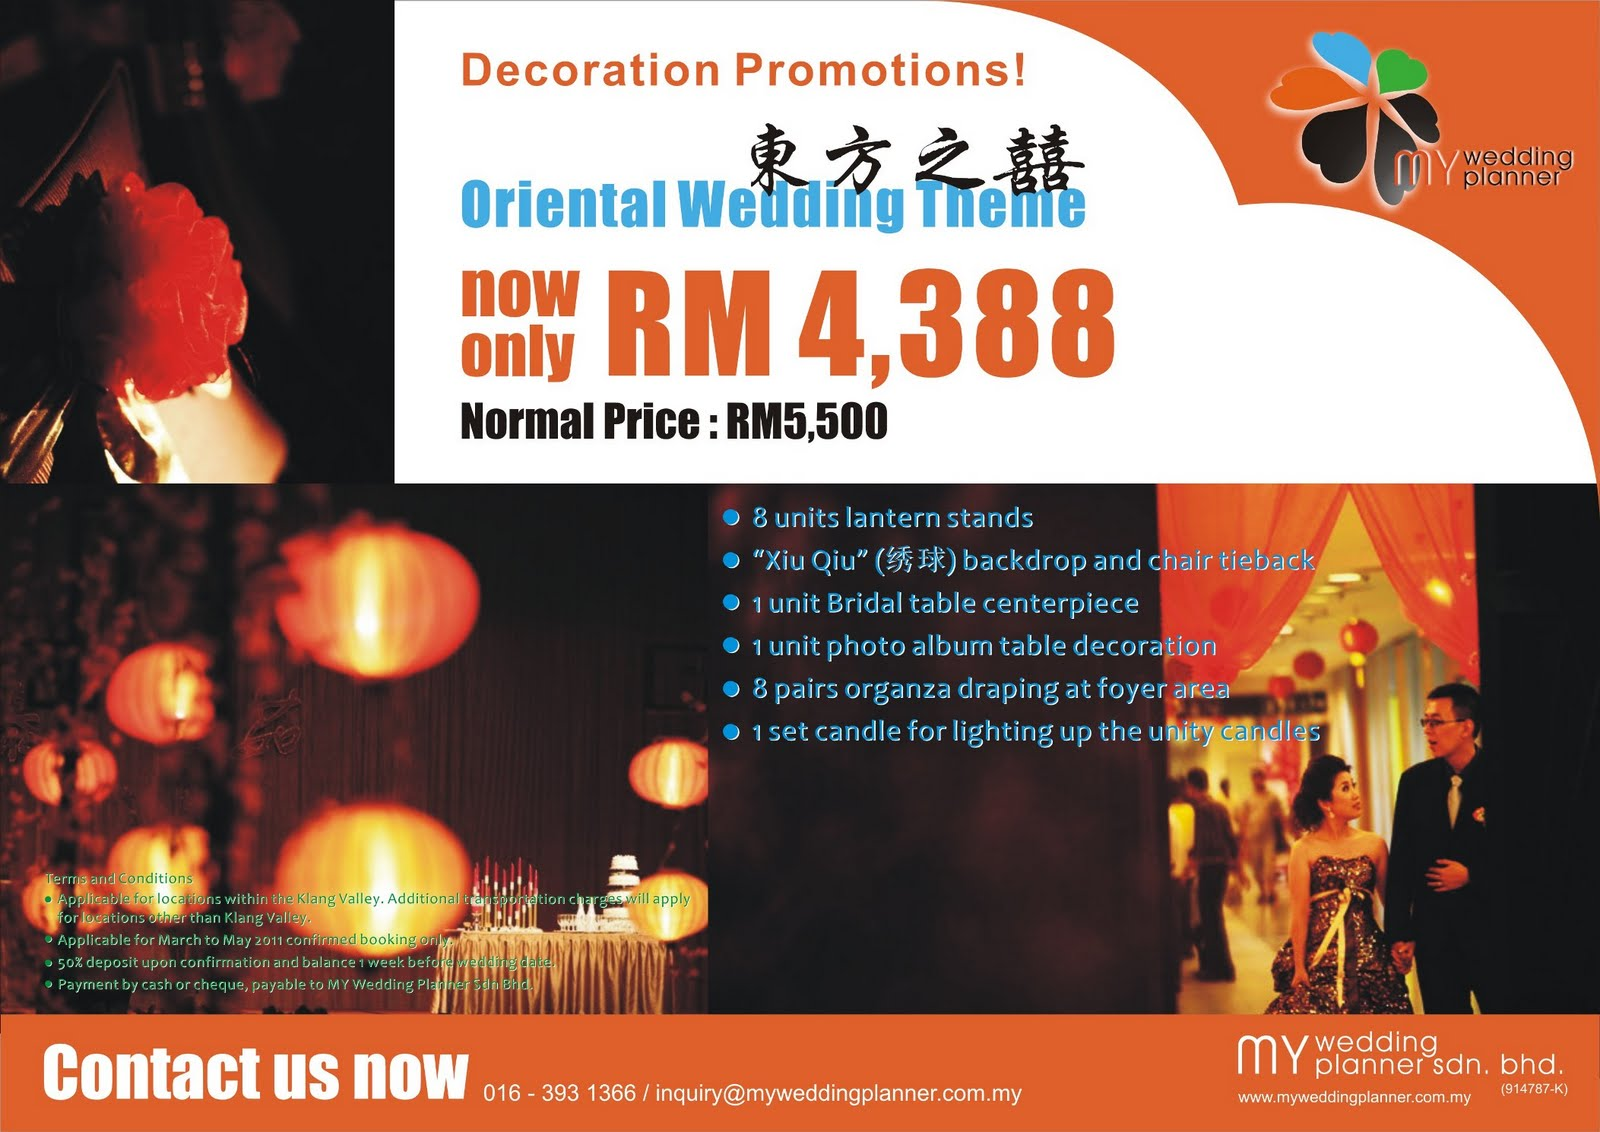 Wedding decoration promotion 2011 a wedding planner malaysia blog for further details please contact my wedding planner visit website here httpmyweddingplanner junglespirit Image collections